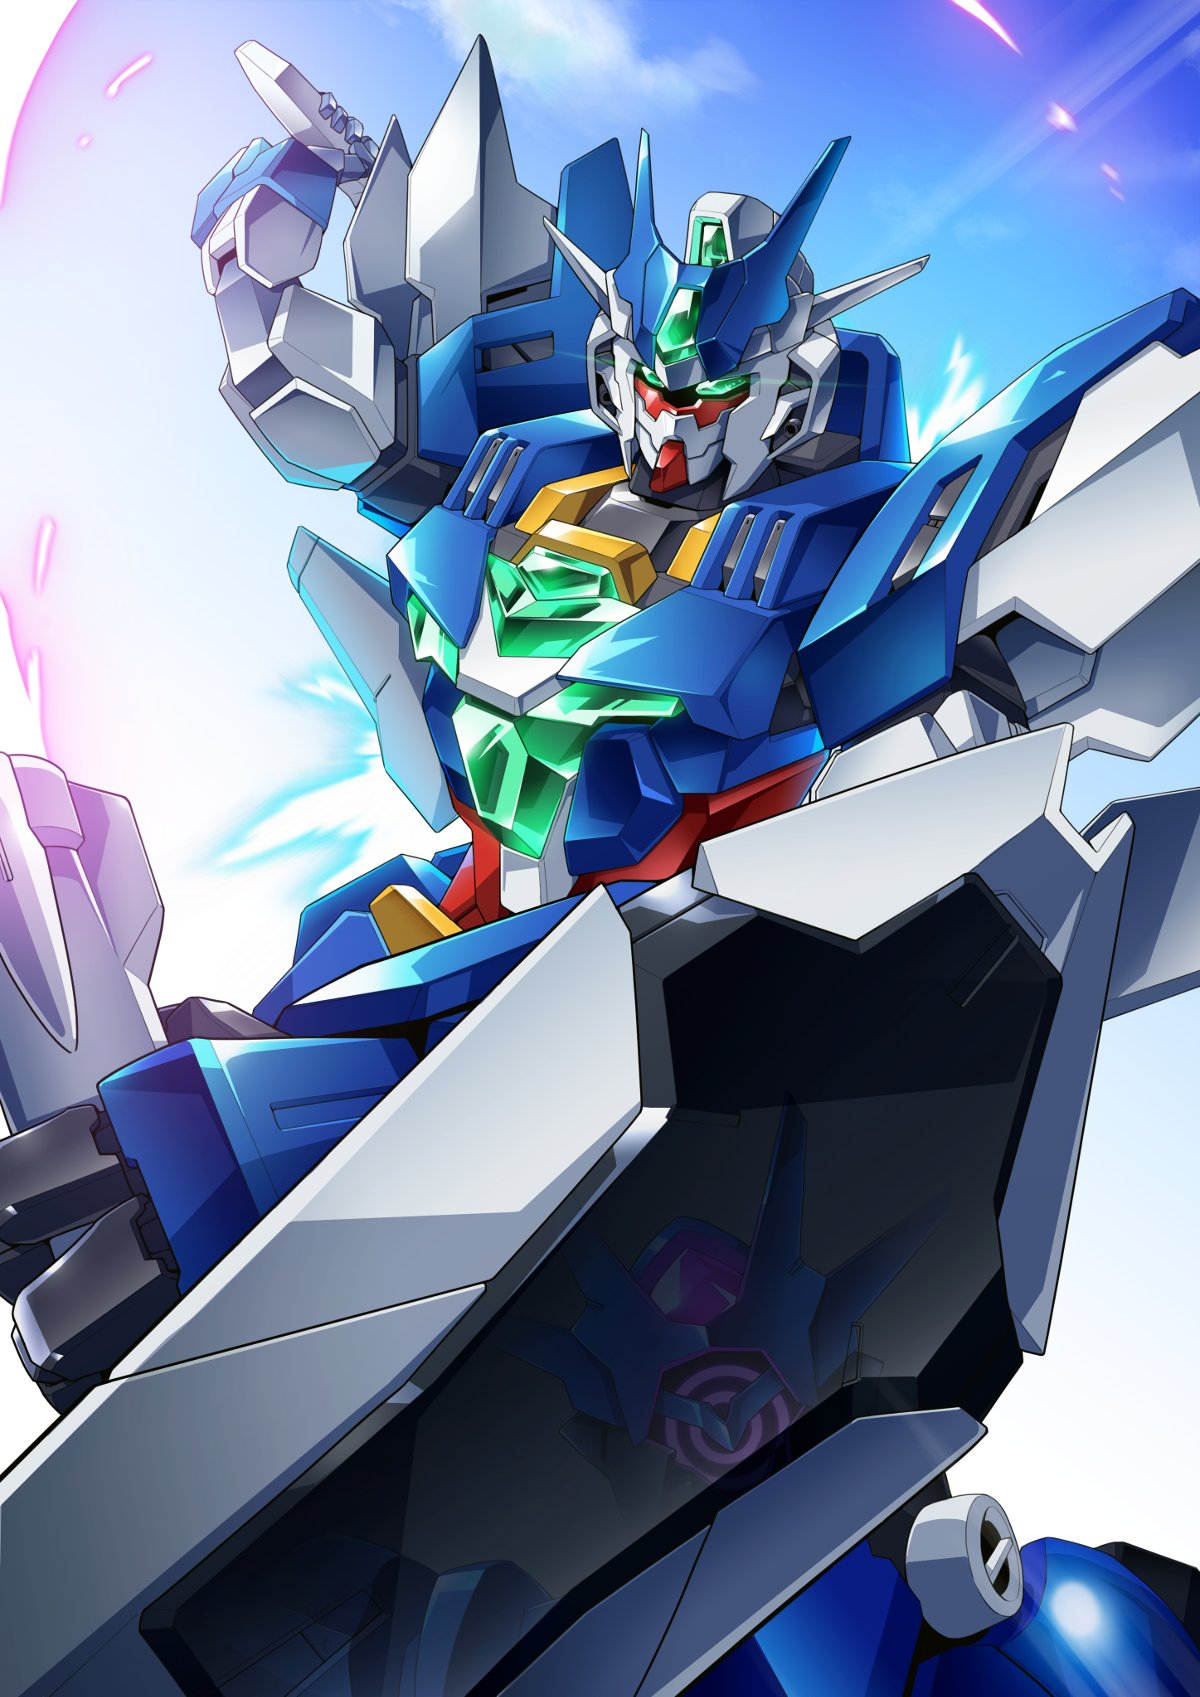 alus_core_gundam beam_saber dual_wielding earthree_gundam gamiani_zero glowing glowing_eyes green_eyes gundam gundam_build_divers gundam_build_divers_re:rise highres holding holding_weapon looking_ahead mecha no_humans reflection shield sky solo solo_focus weapon